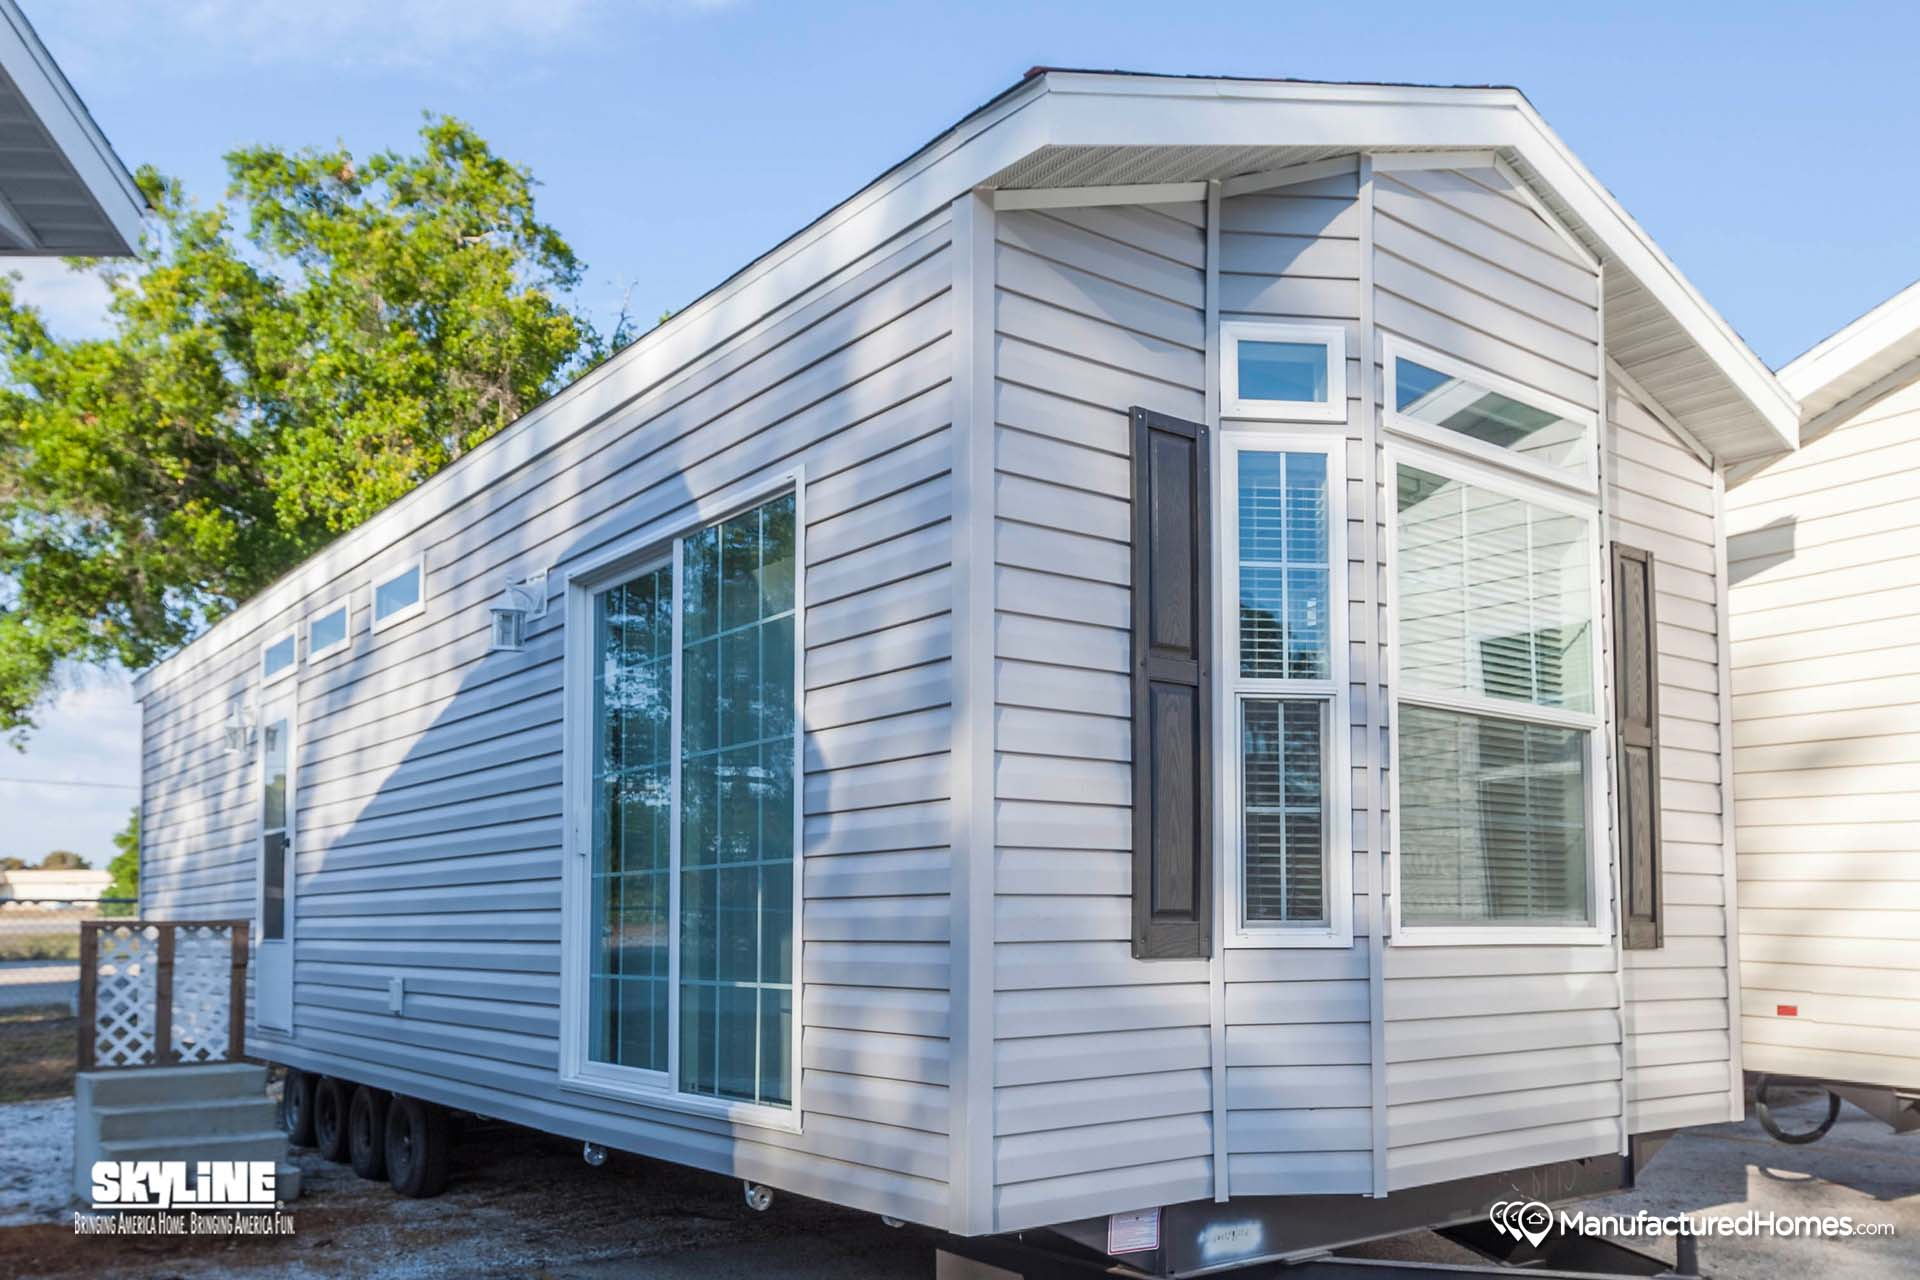 ocala manufactured home dealers with 3163 on 3163 likewise Mobile Home For Sale additionally 4301 ct in addition Mobile Home Dealer Locations further 6244.